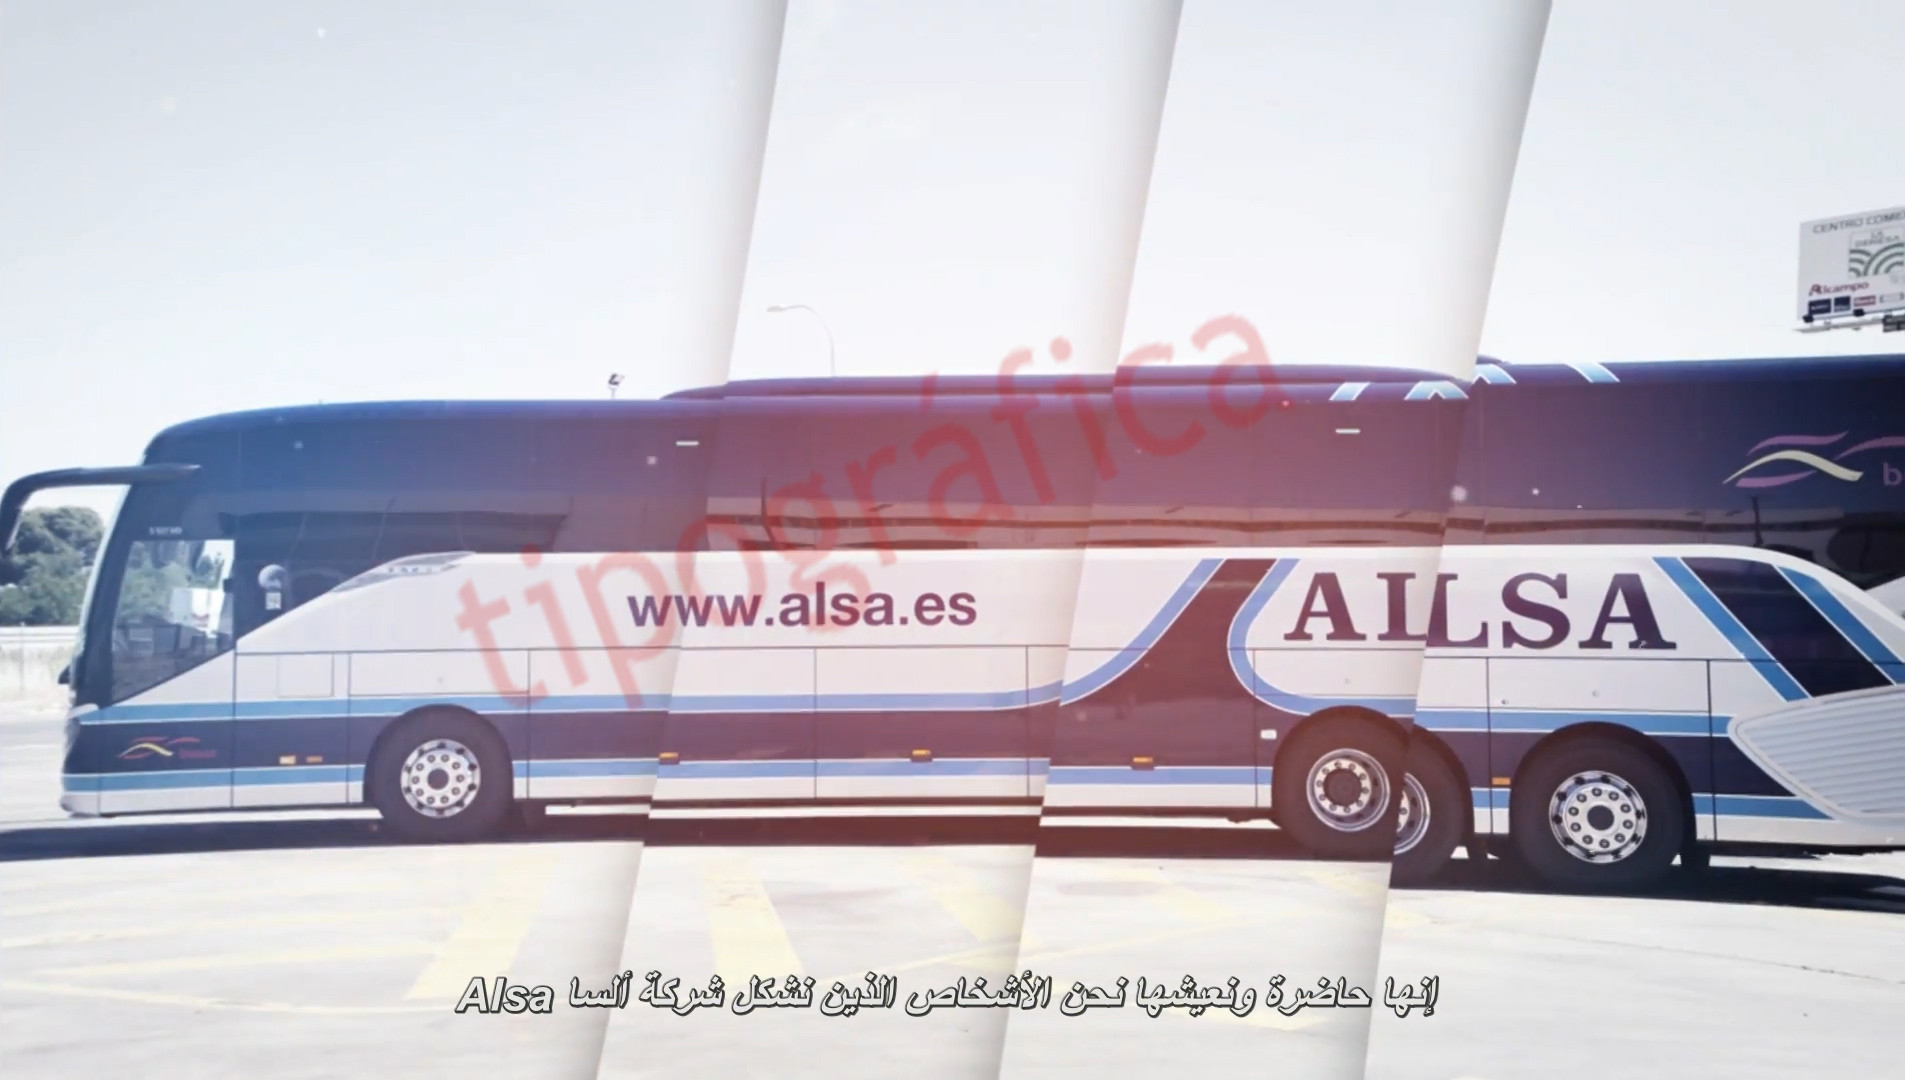 Promotional video in Arabic